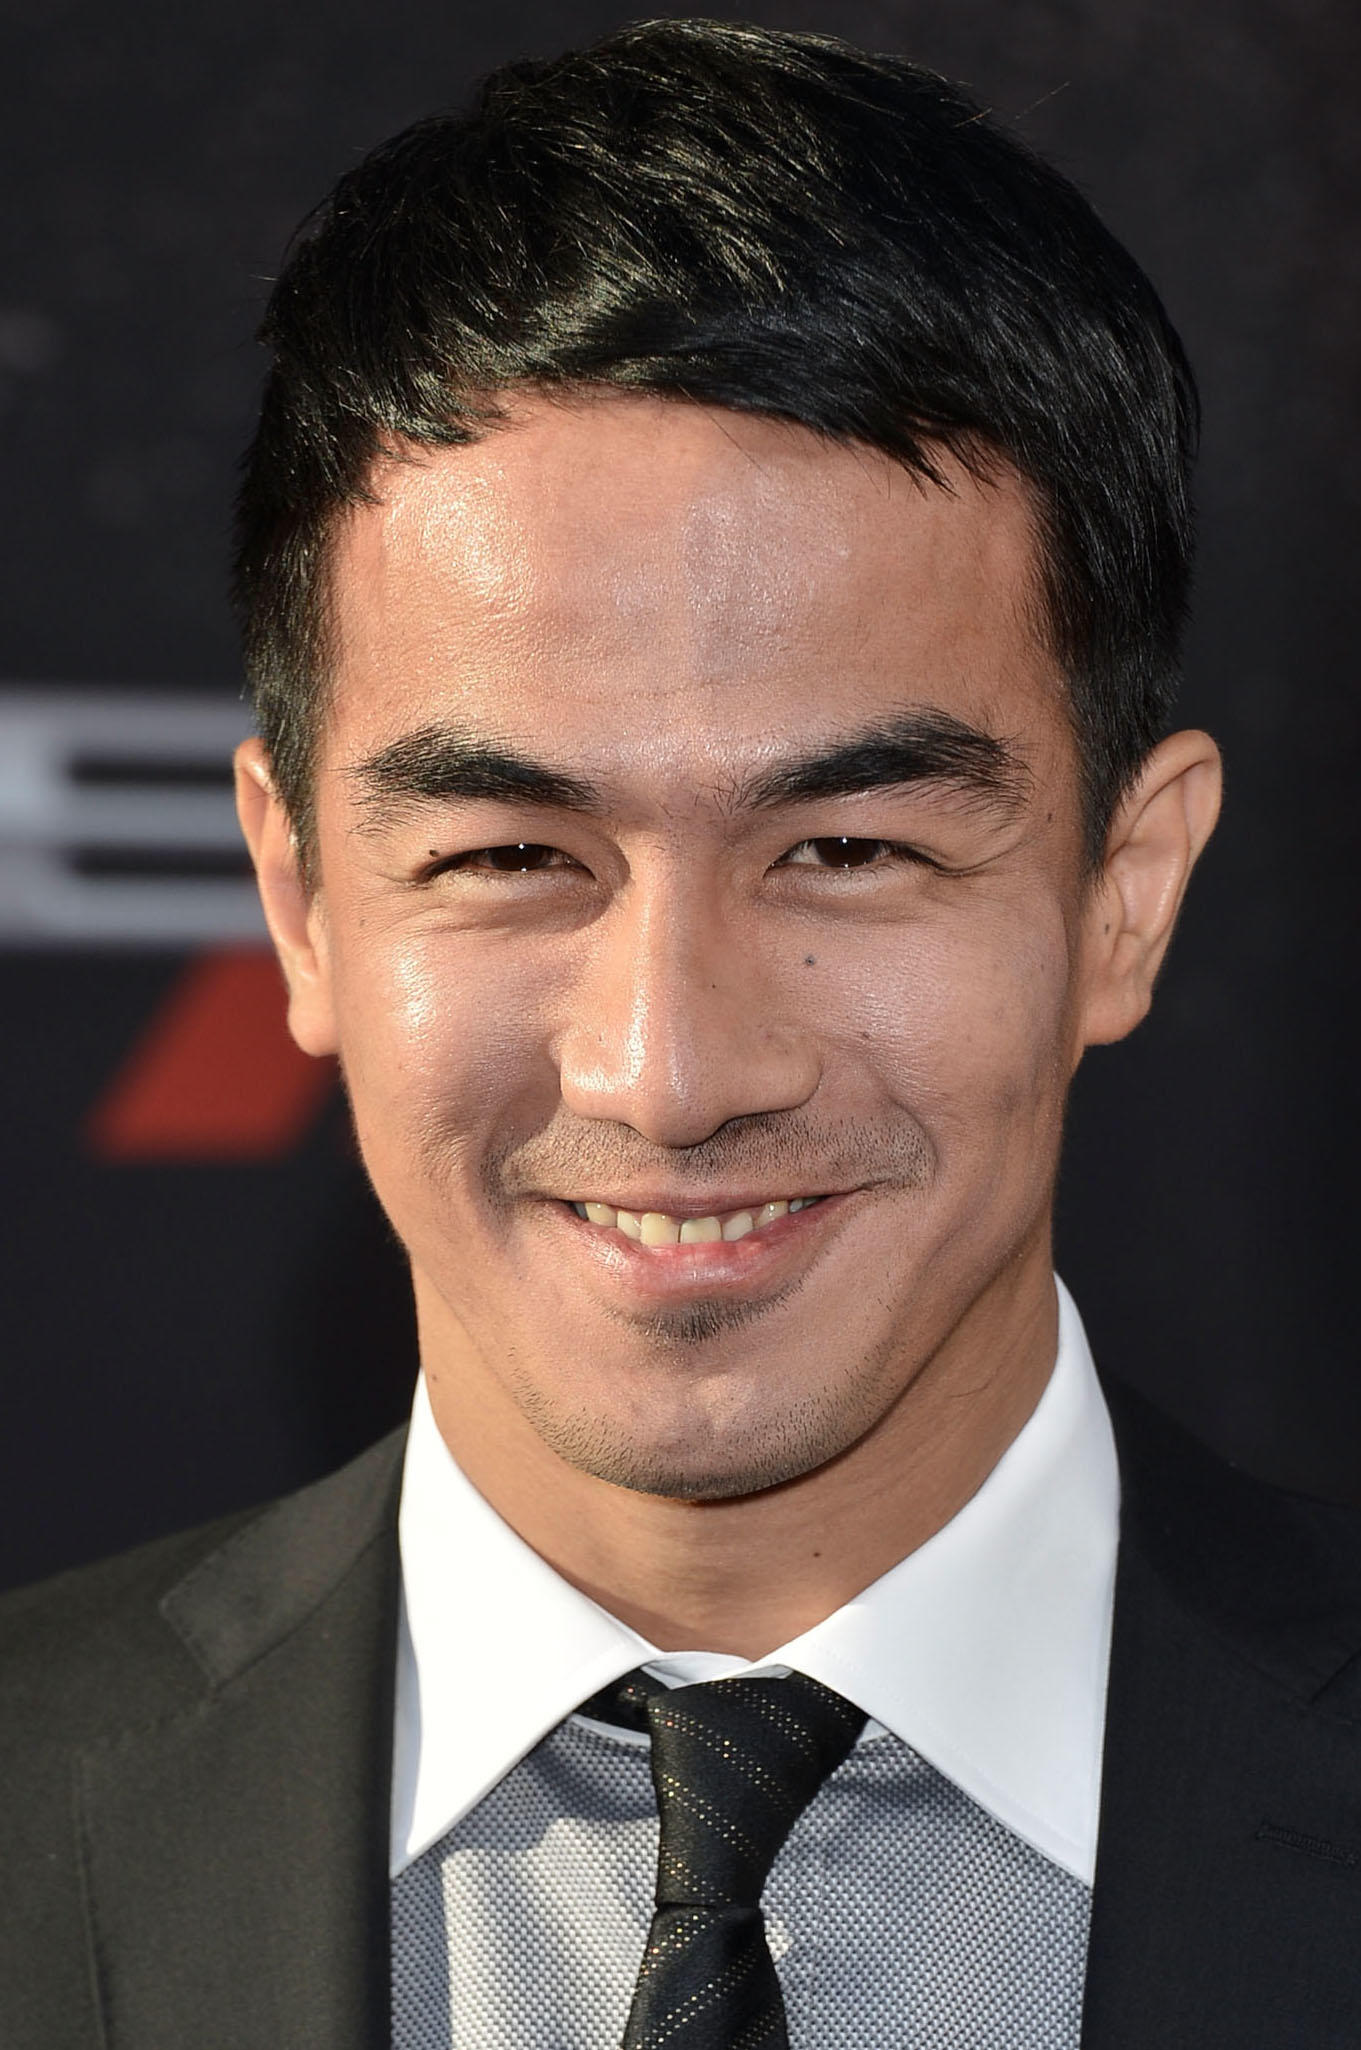 Joe Taslim at the